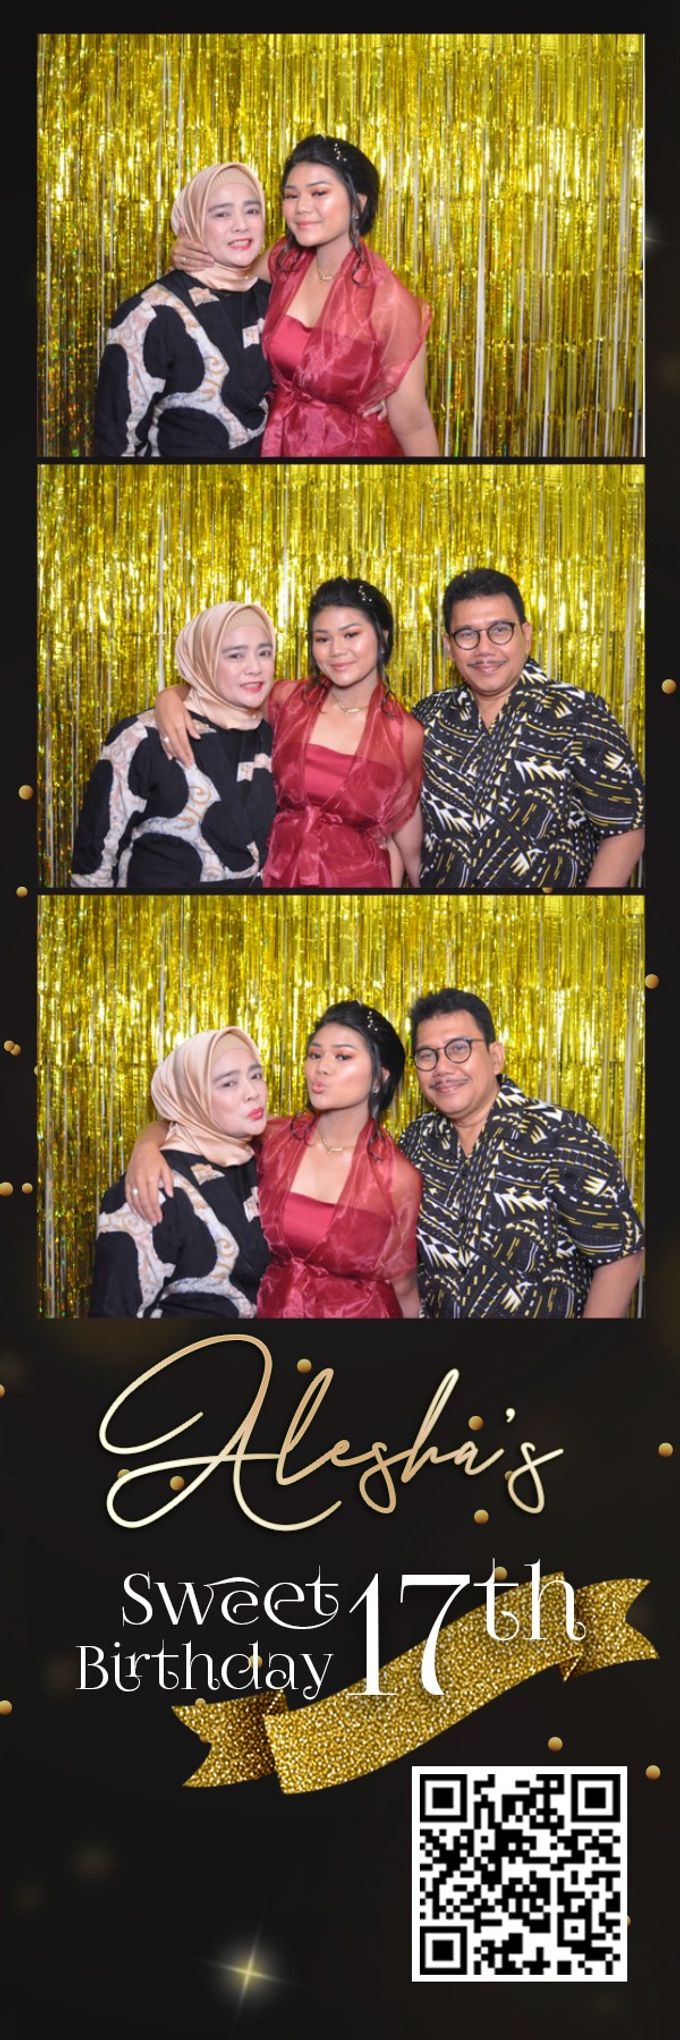 SRIPE PHOTOBOOTH by Picto Booth - 012